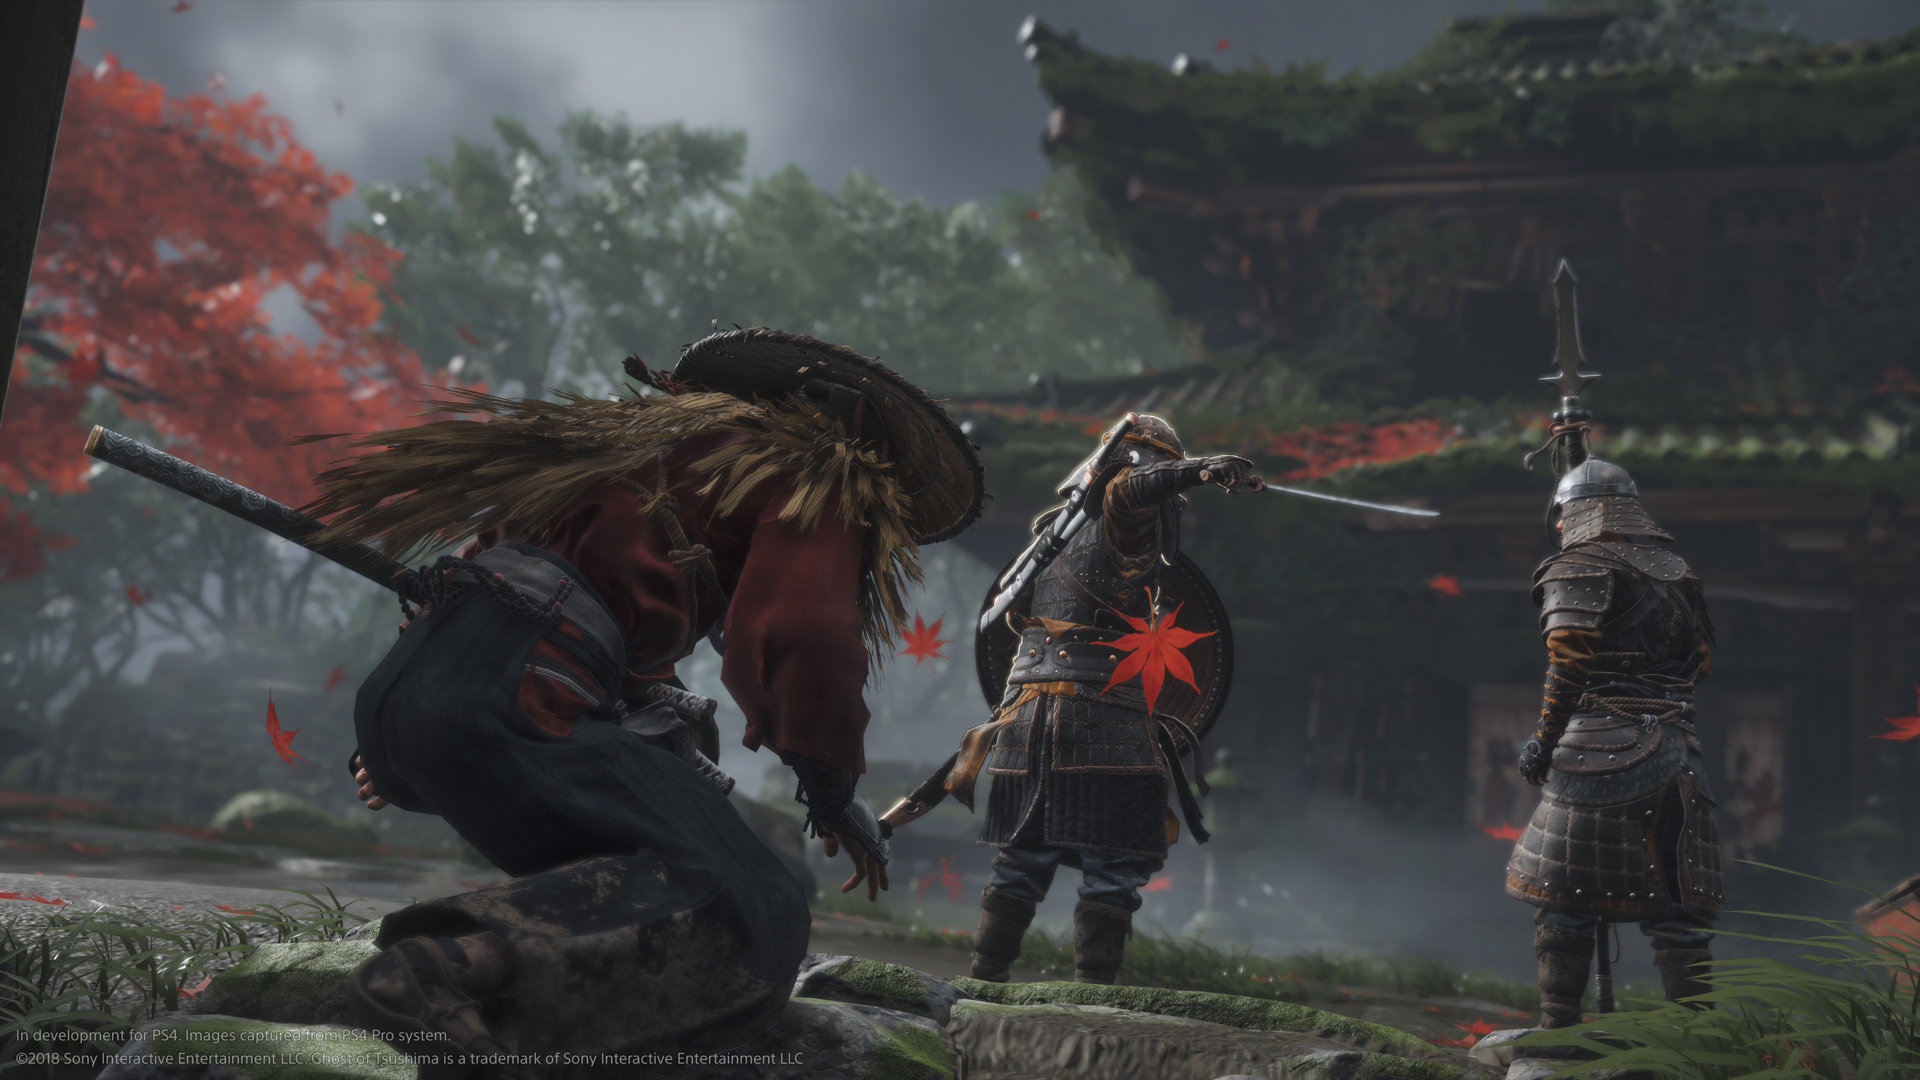 Quelle: Sony Interactive Entertainment - Ghost of Tsushima